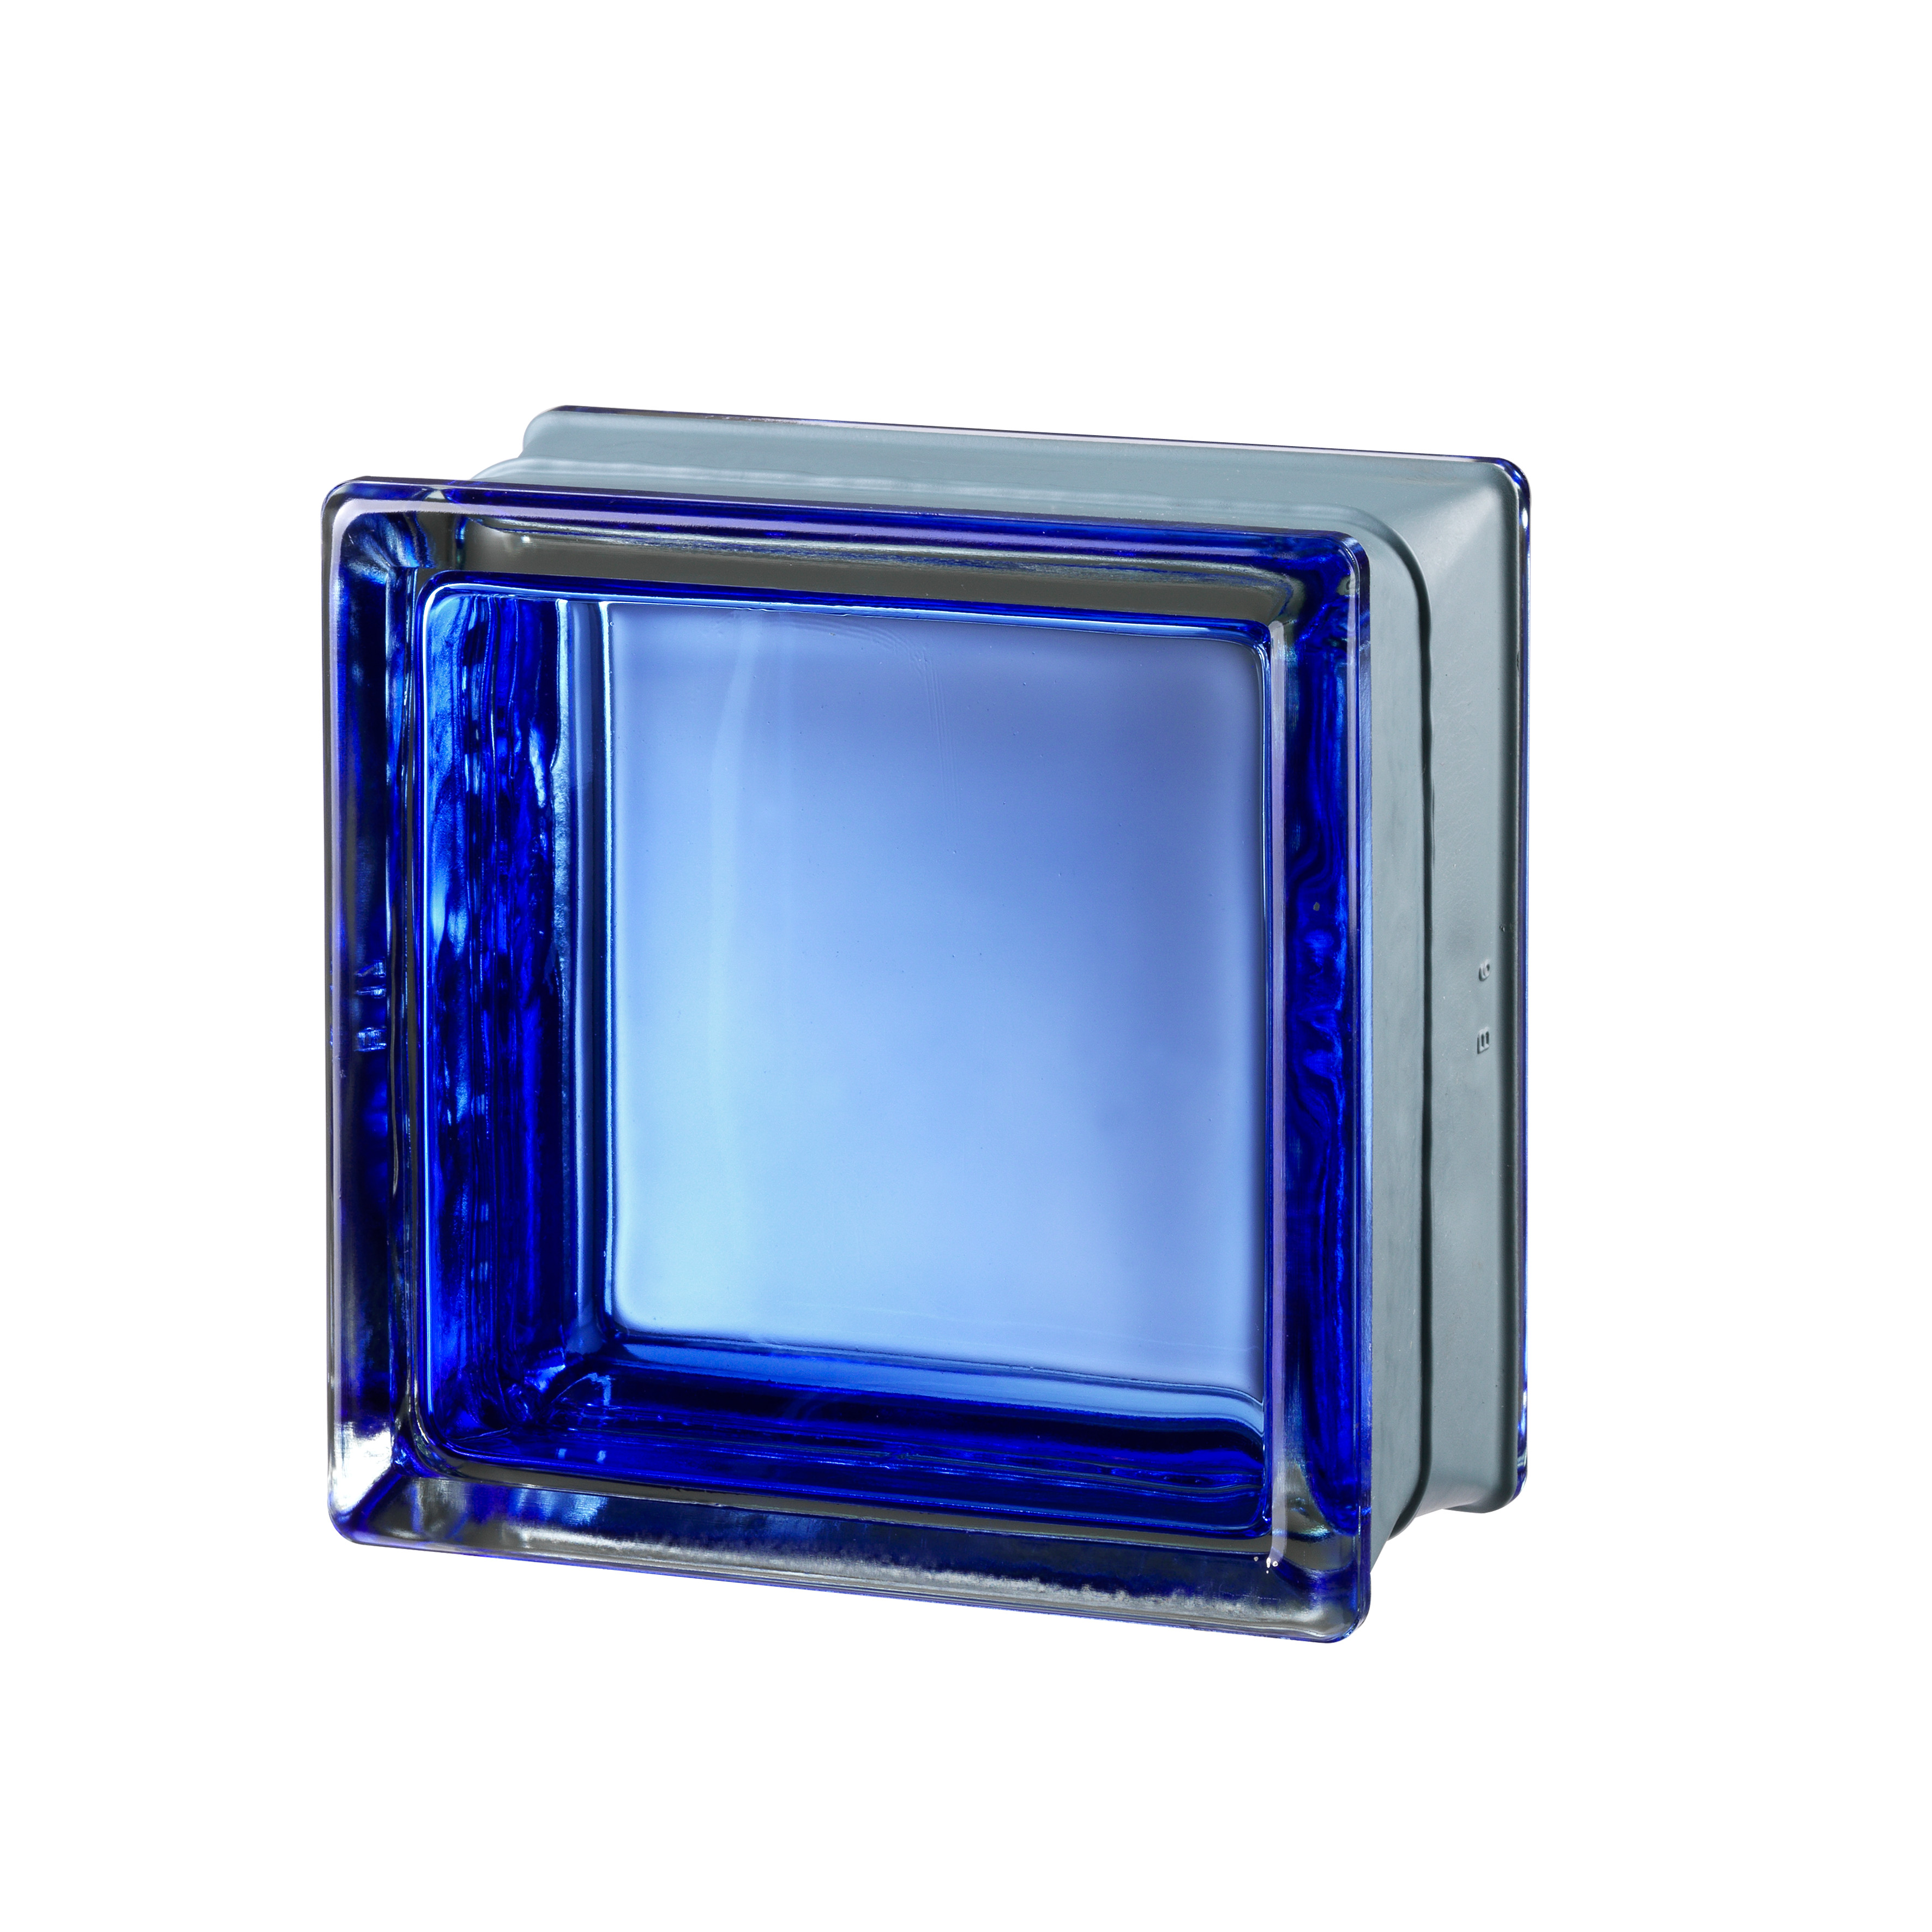 Glass Blocks Direct Ltd